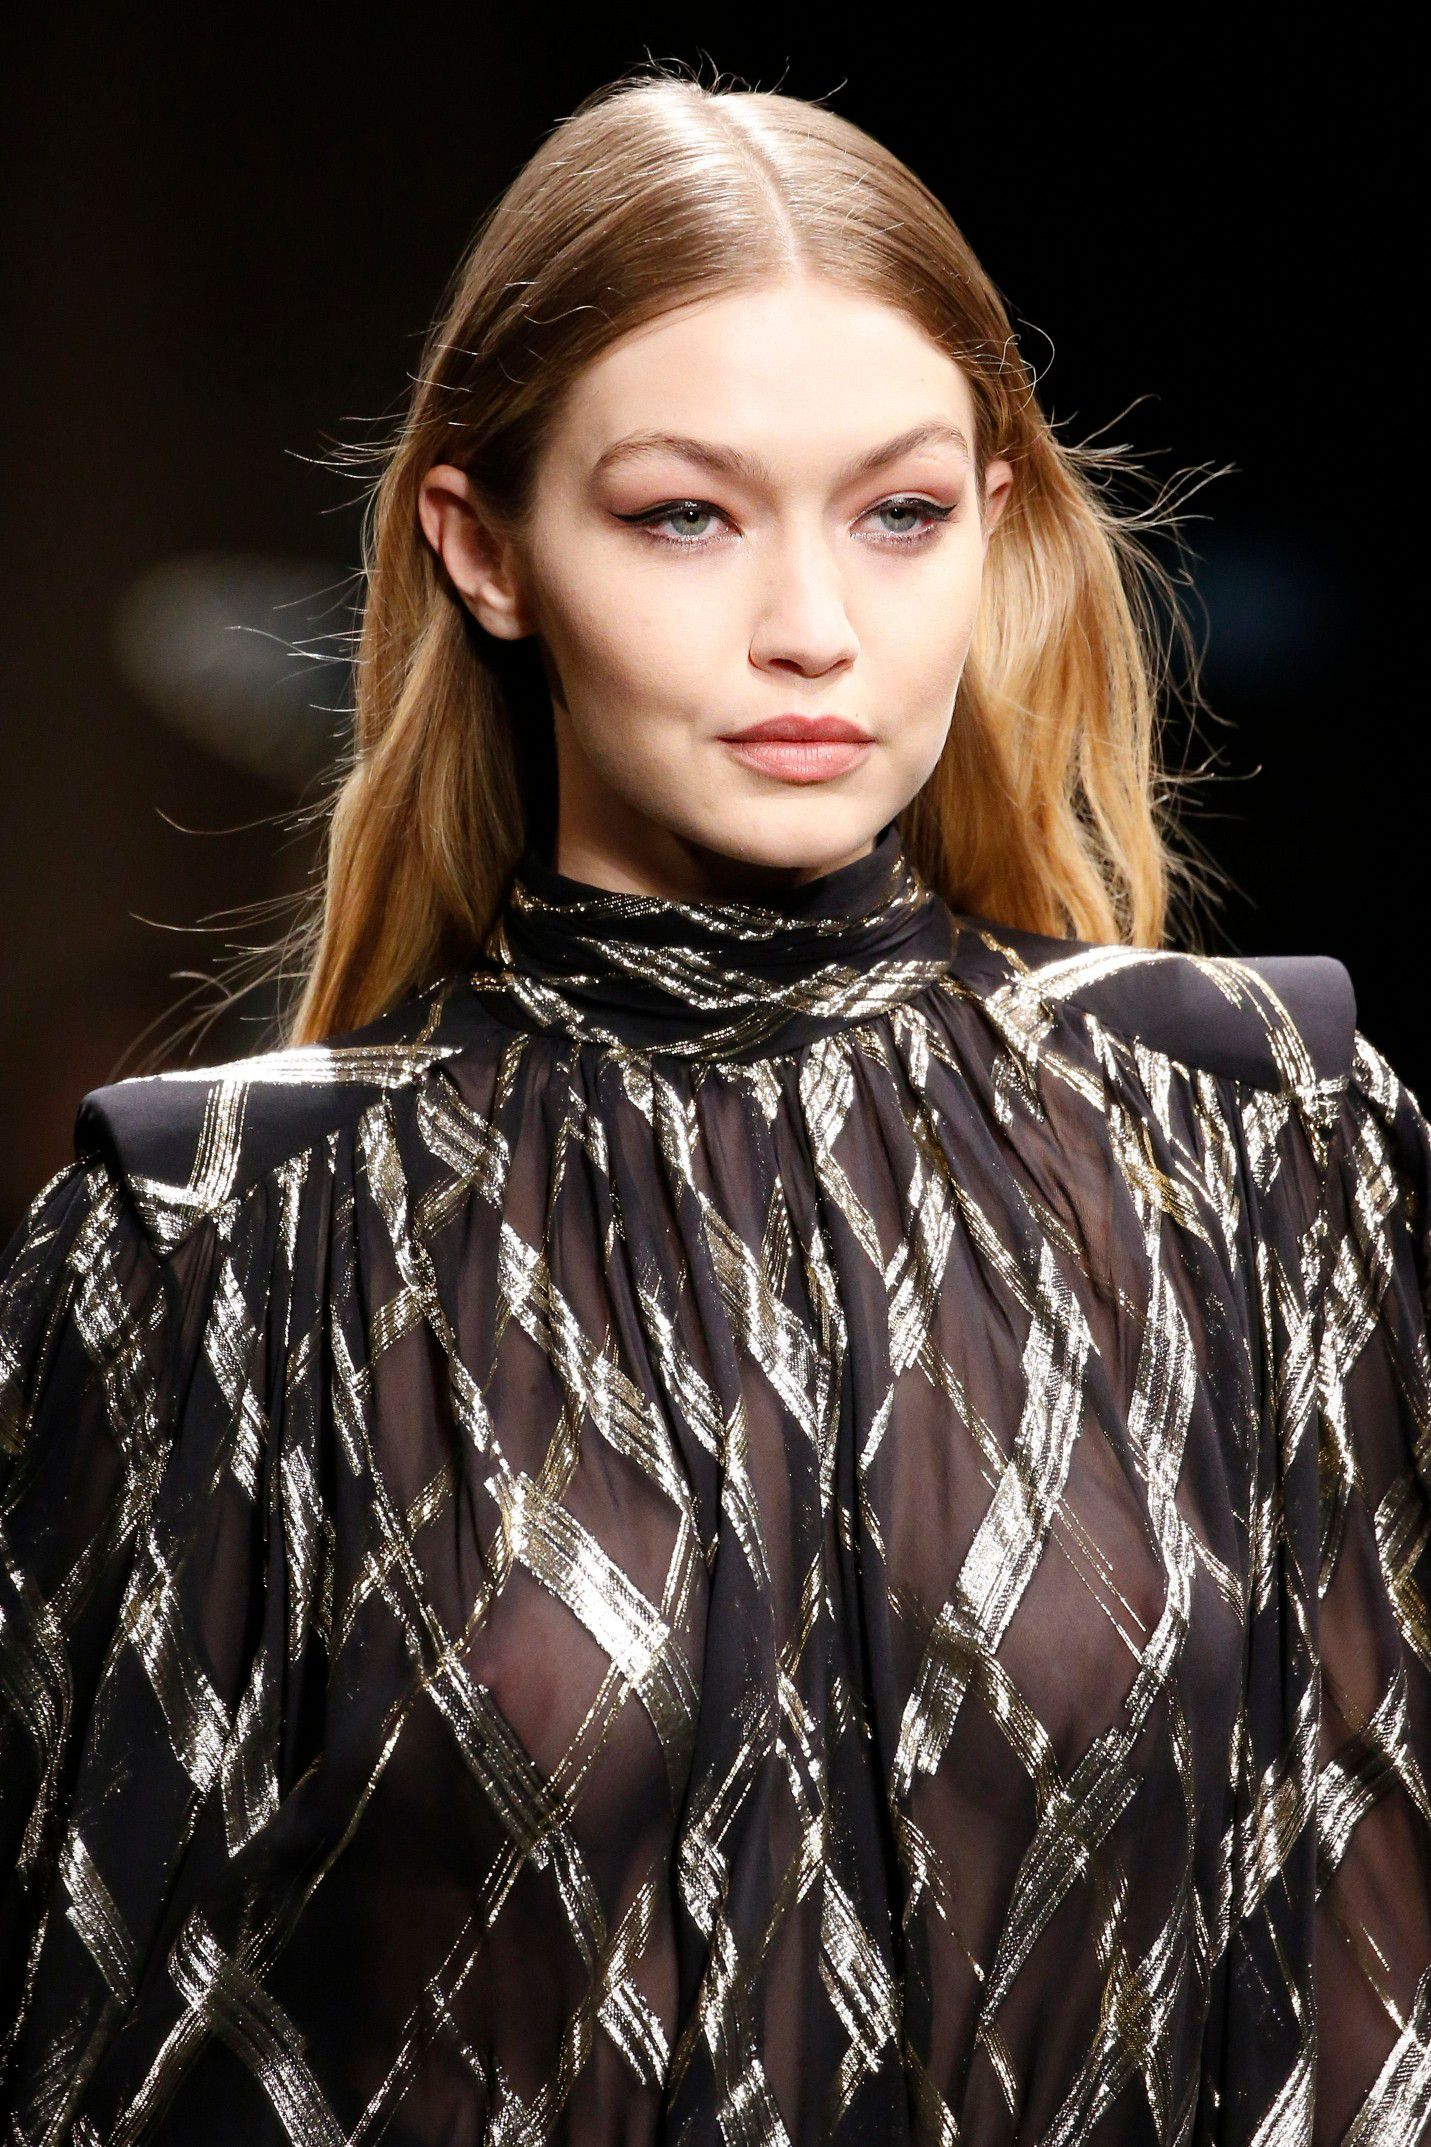 gigi-hadid-braless-see-thru-dress-at-milan-fashion-show-4081